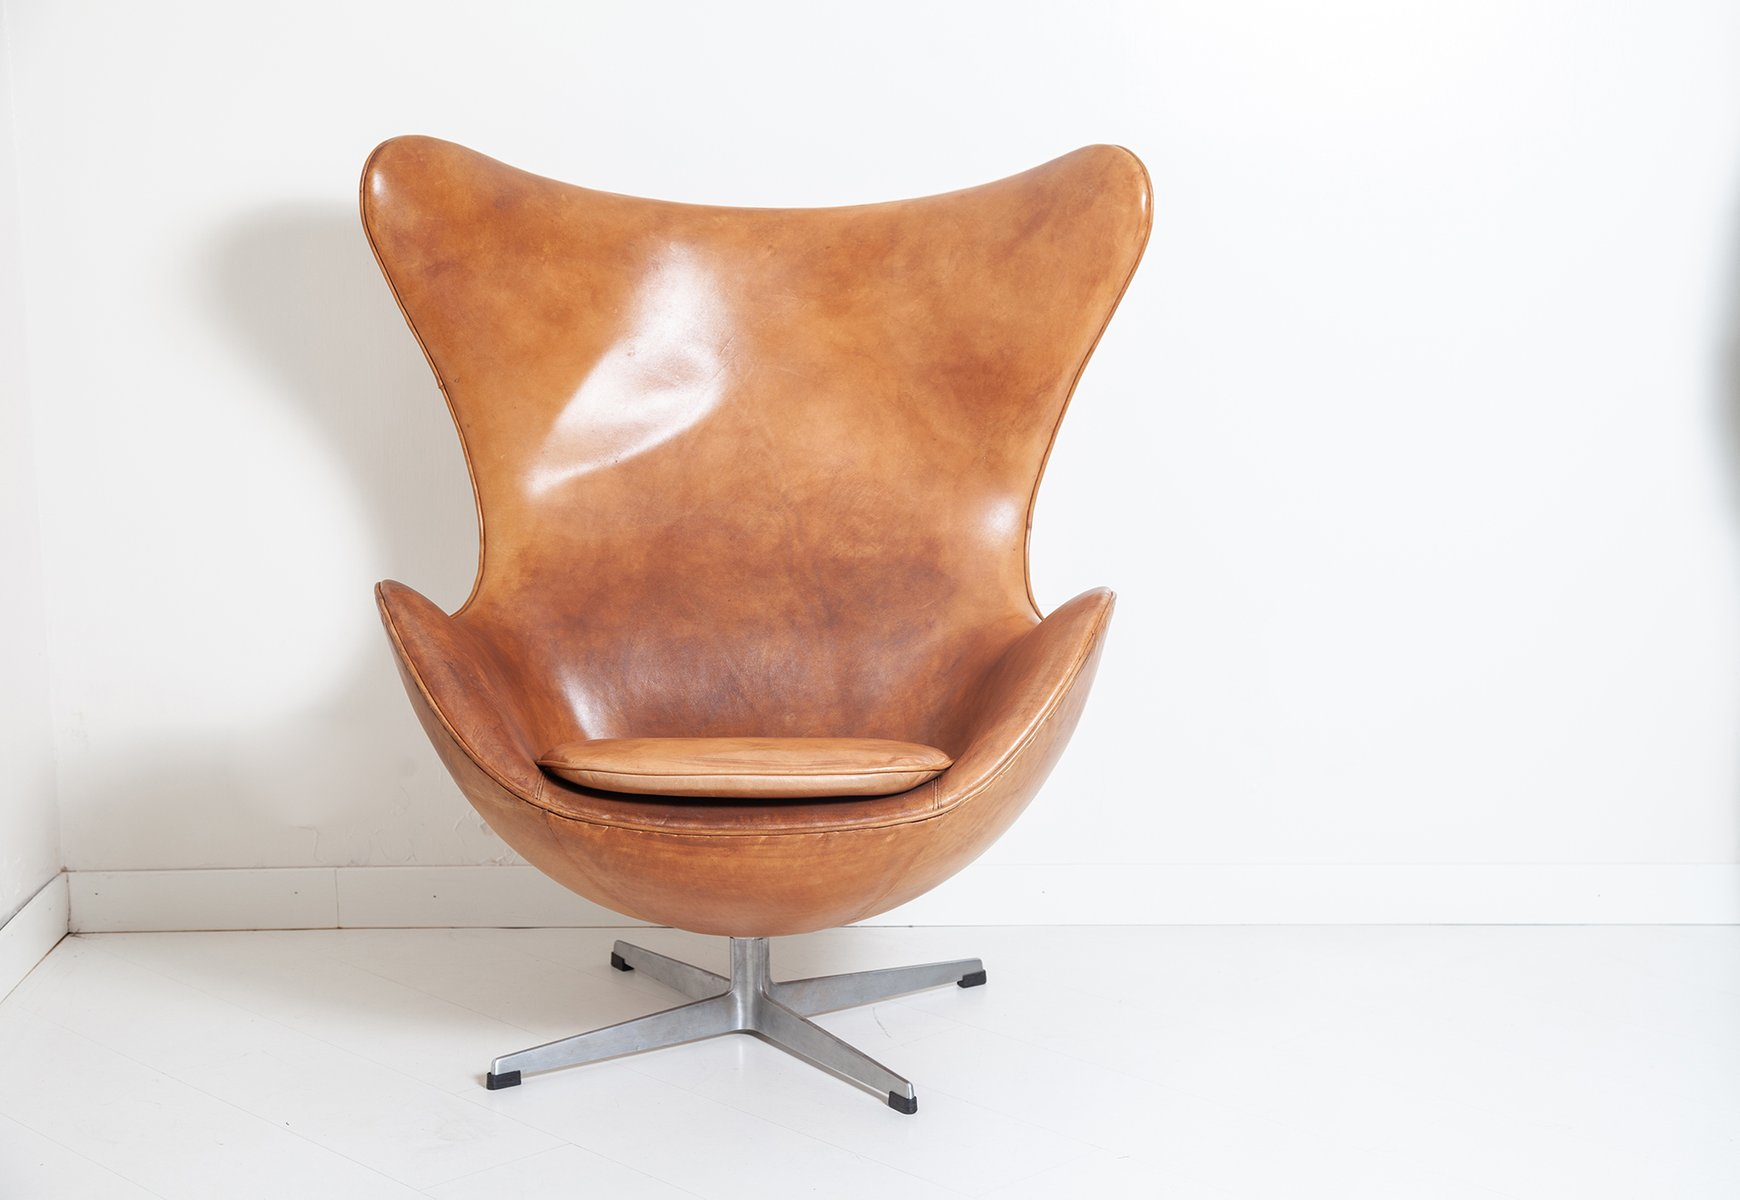 Vintage Egg Chair with Footrest by Arne Jacobsen for Fritz